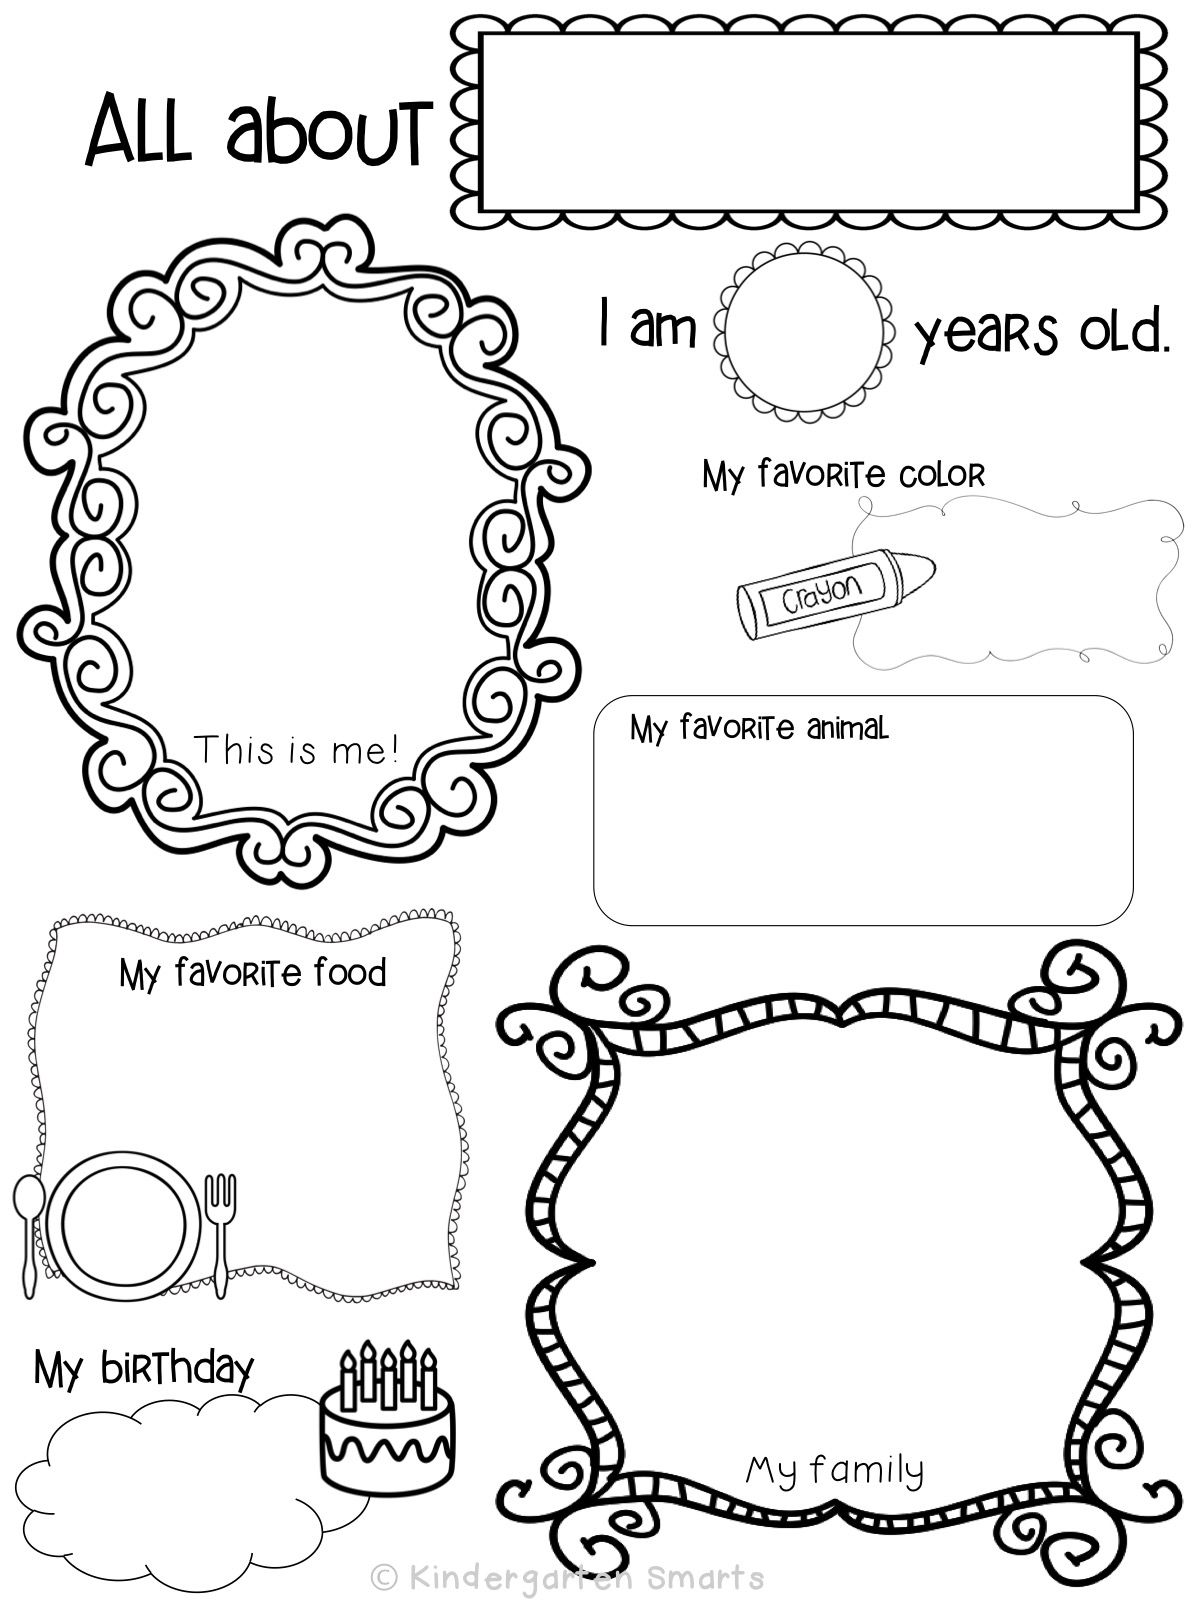 Free Downloadable Therapeutic Worksheets for Children and ...